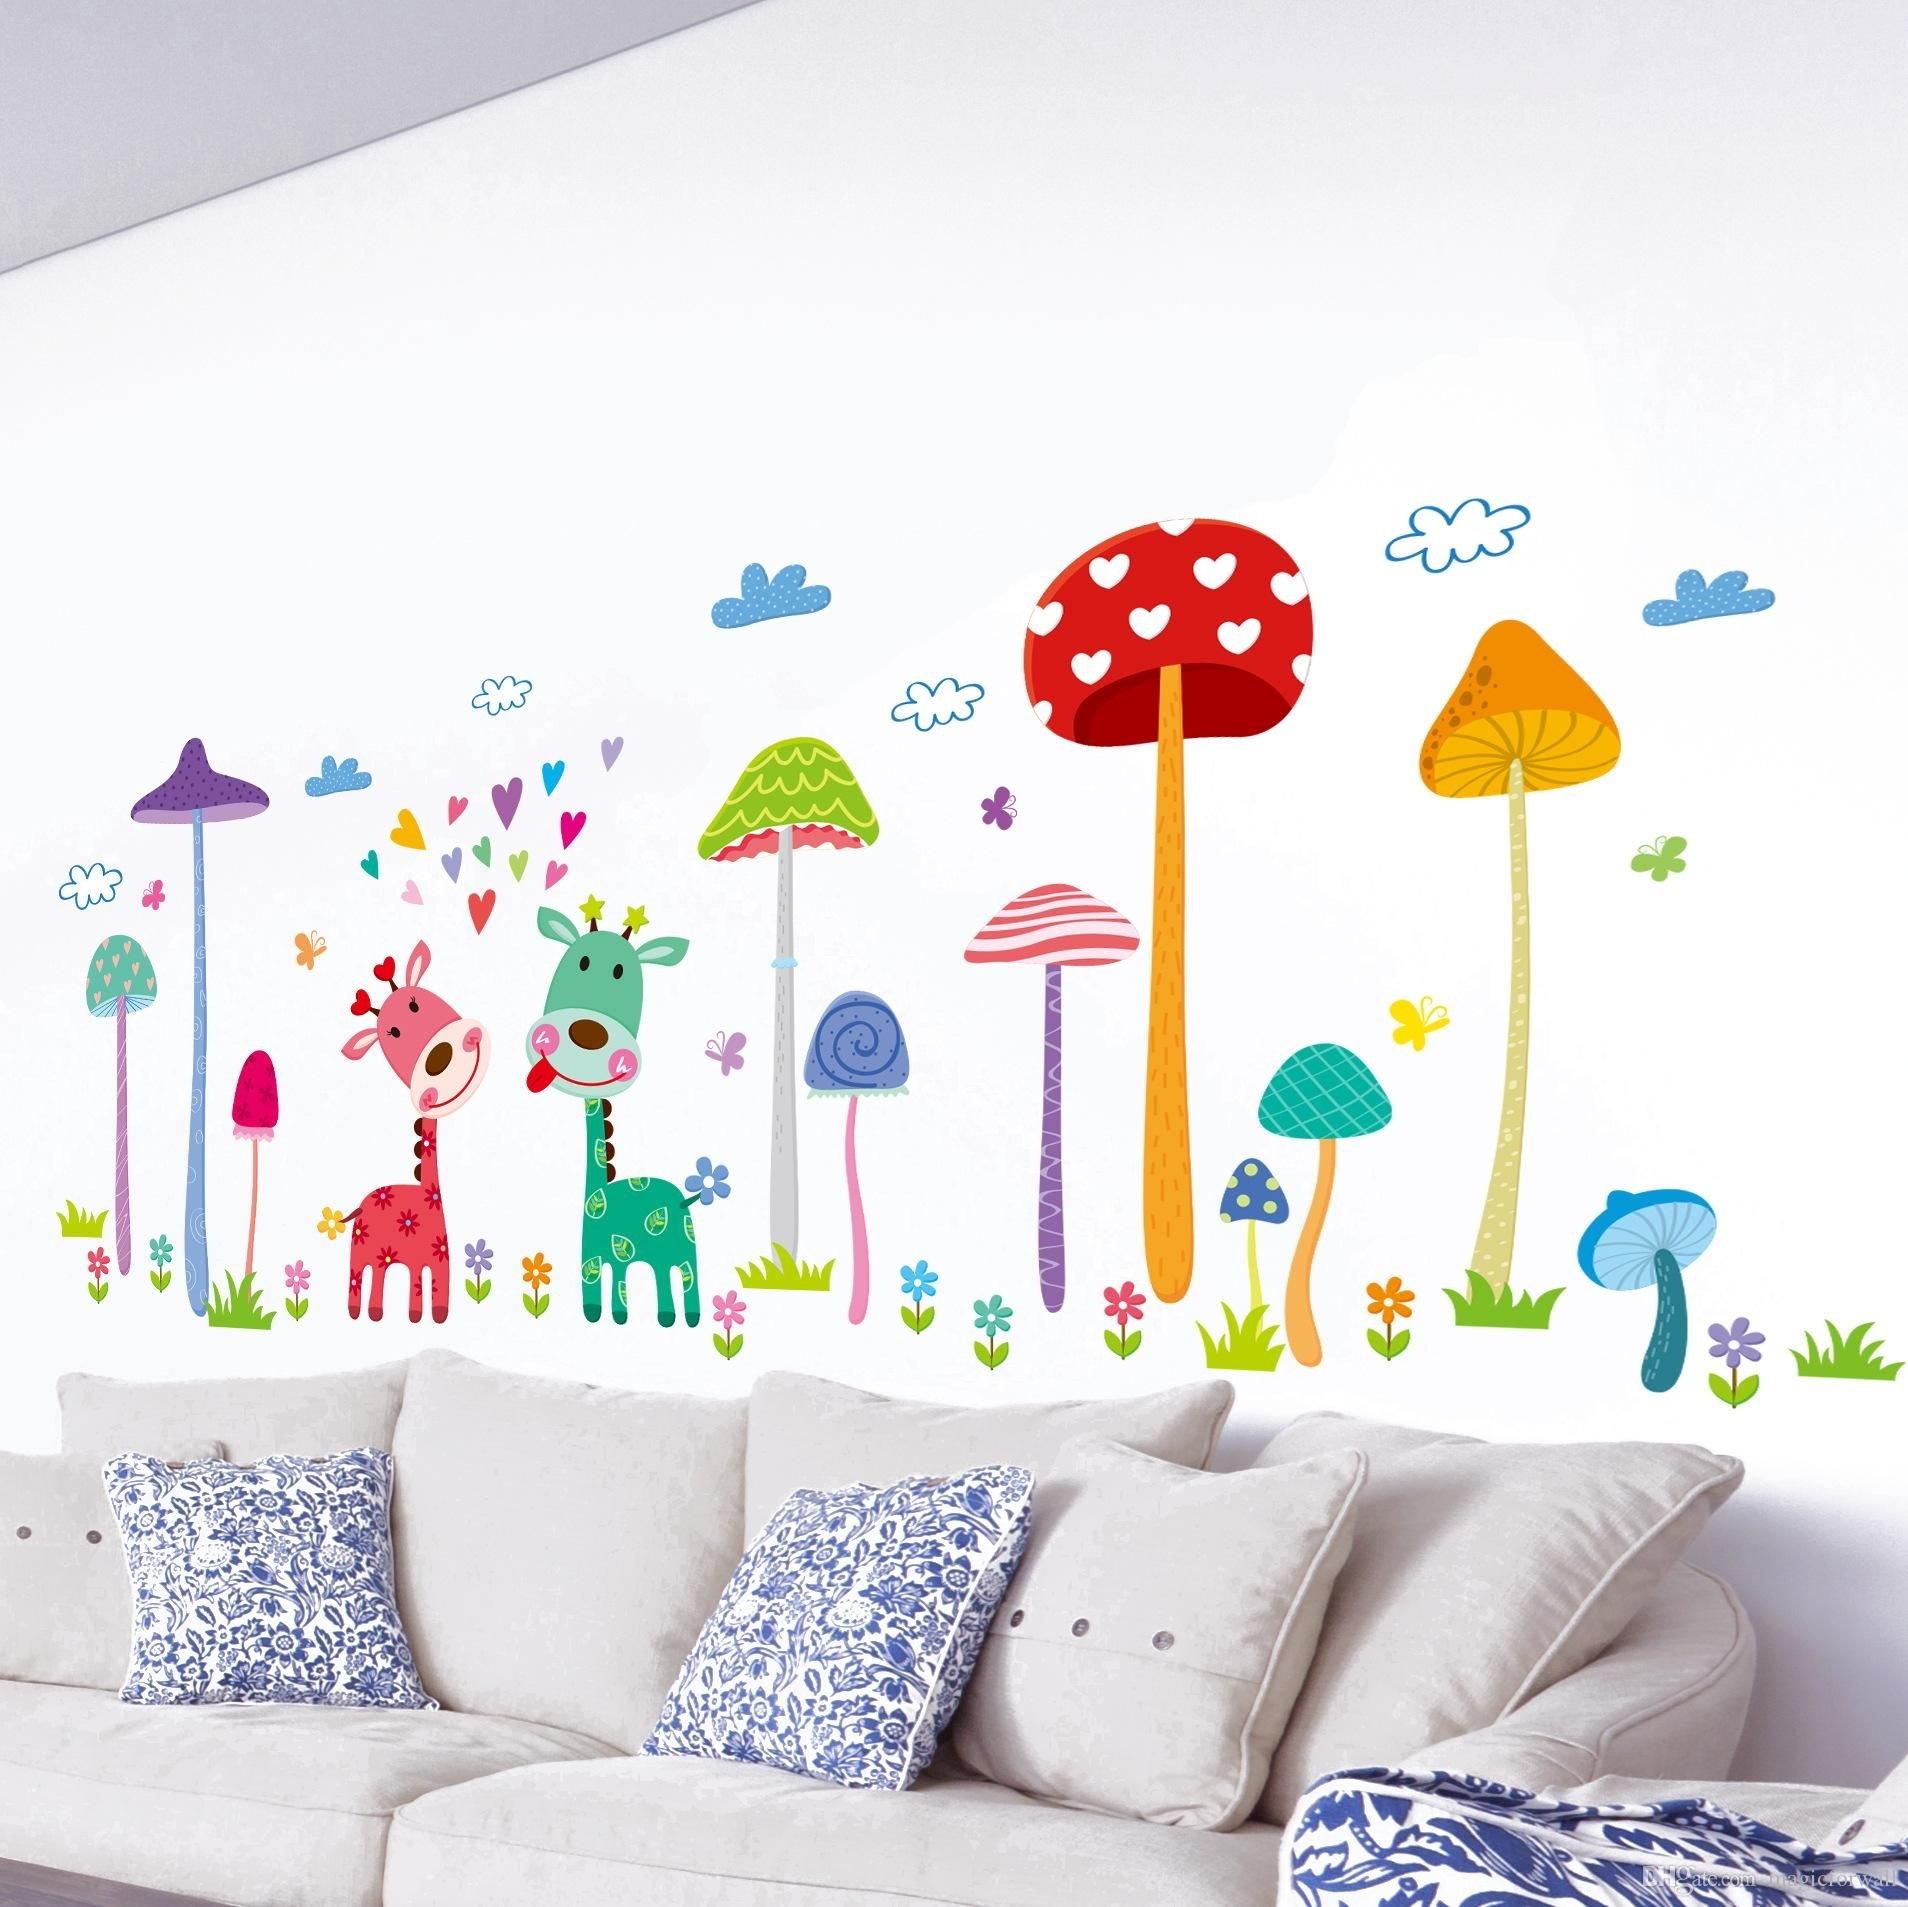 Forest Mushroom Deer Animals Home Wall Art Mural Decor Kids Babies With Regard To Most Up To Date Home Wall Art (View 17 of 20)